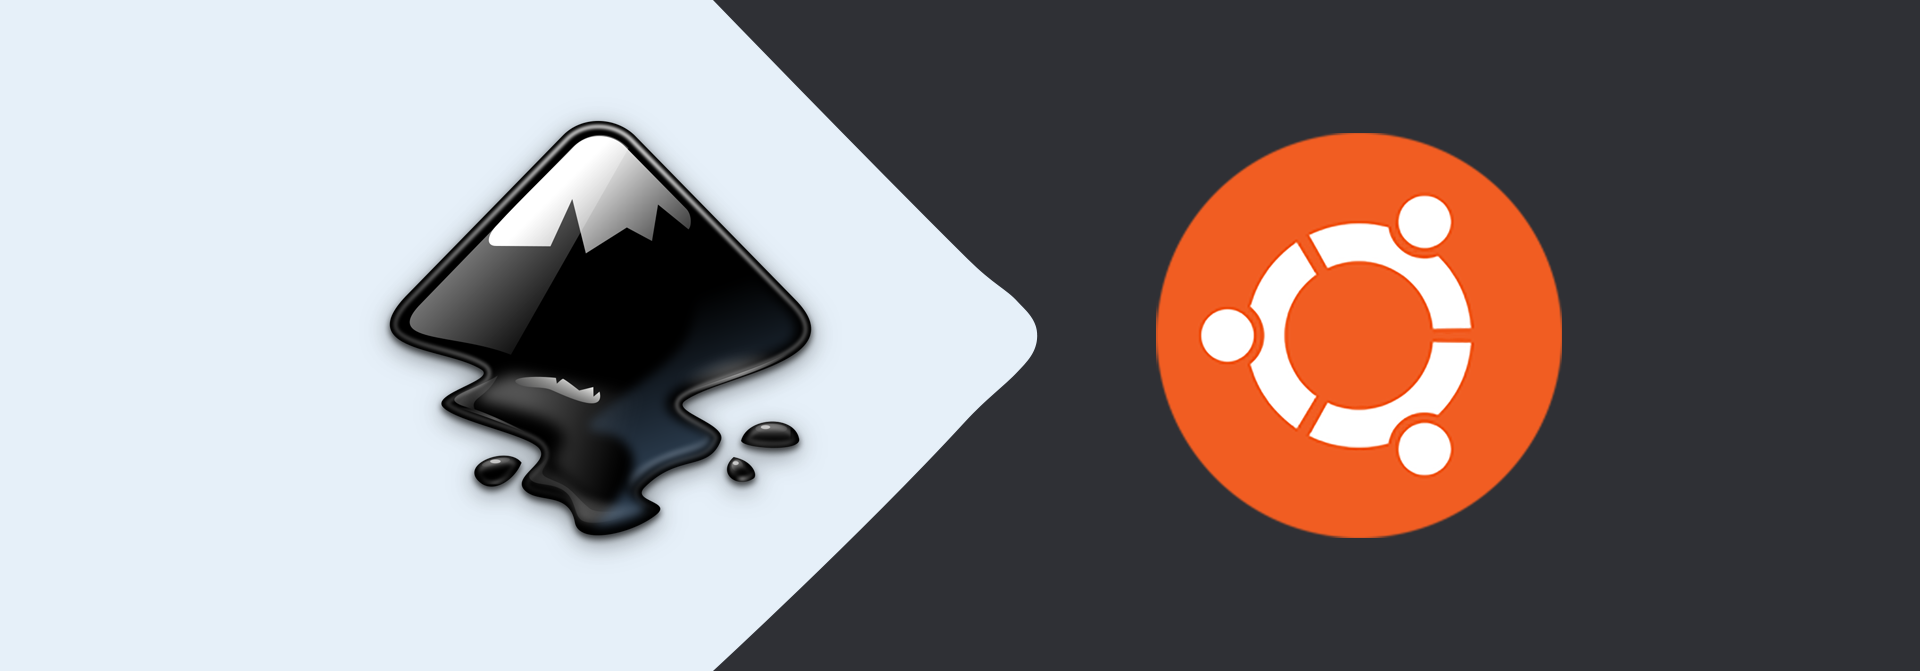 How To Install Inkscape On Ubuntu 18.04 LTS